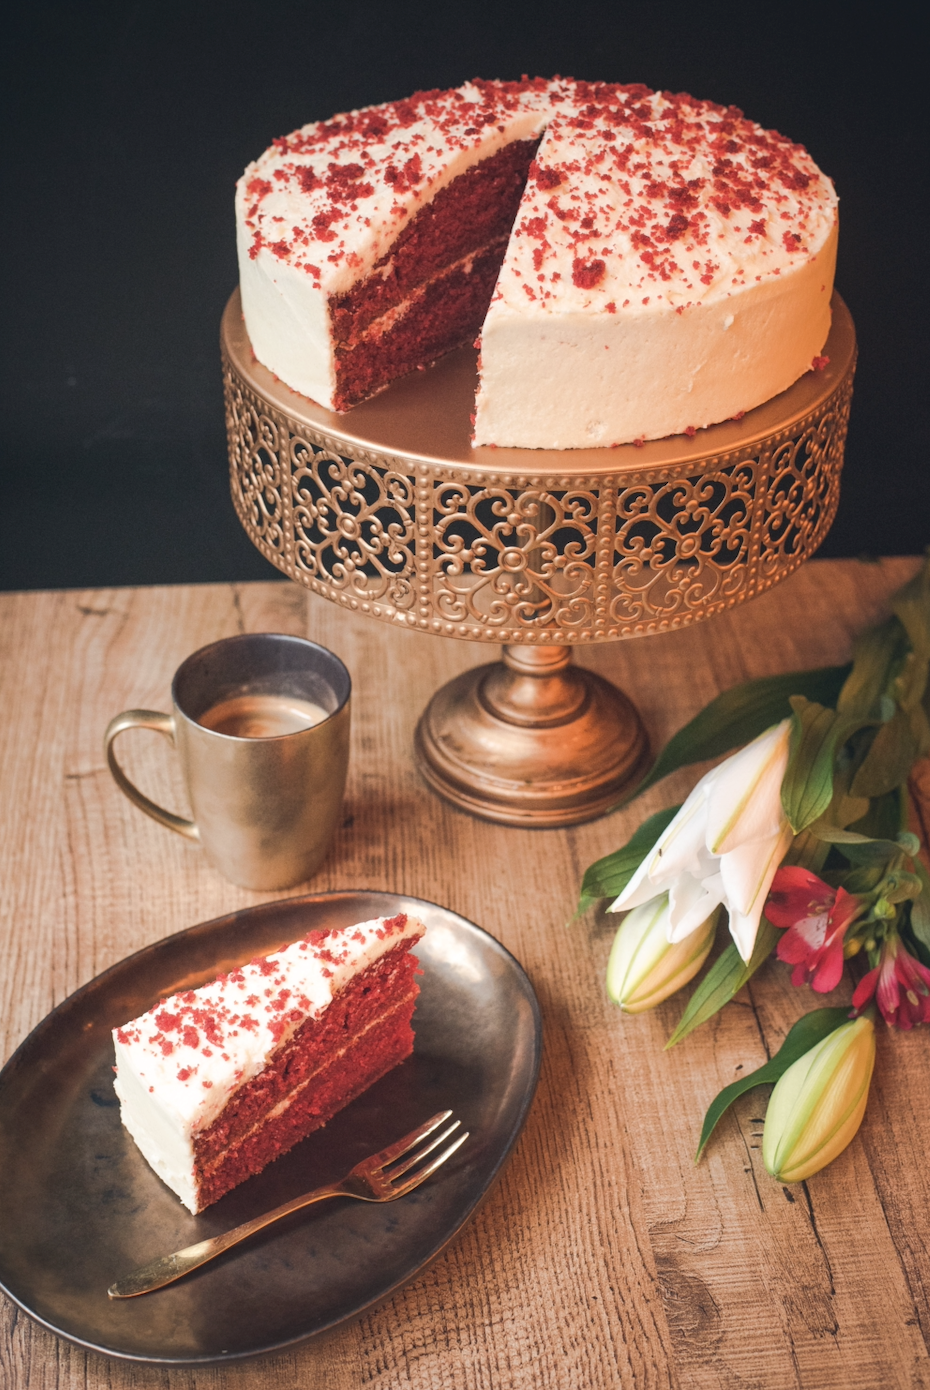 Whole Red Velvet Cake (26cm)